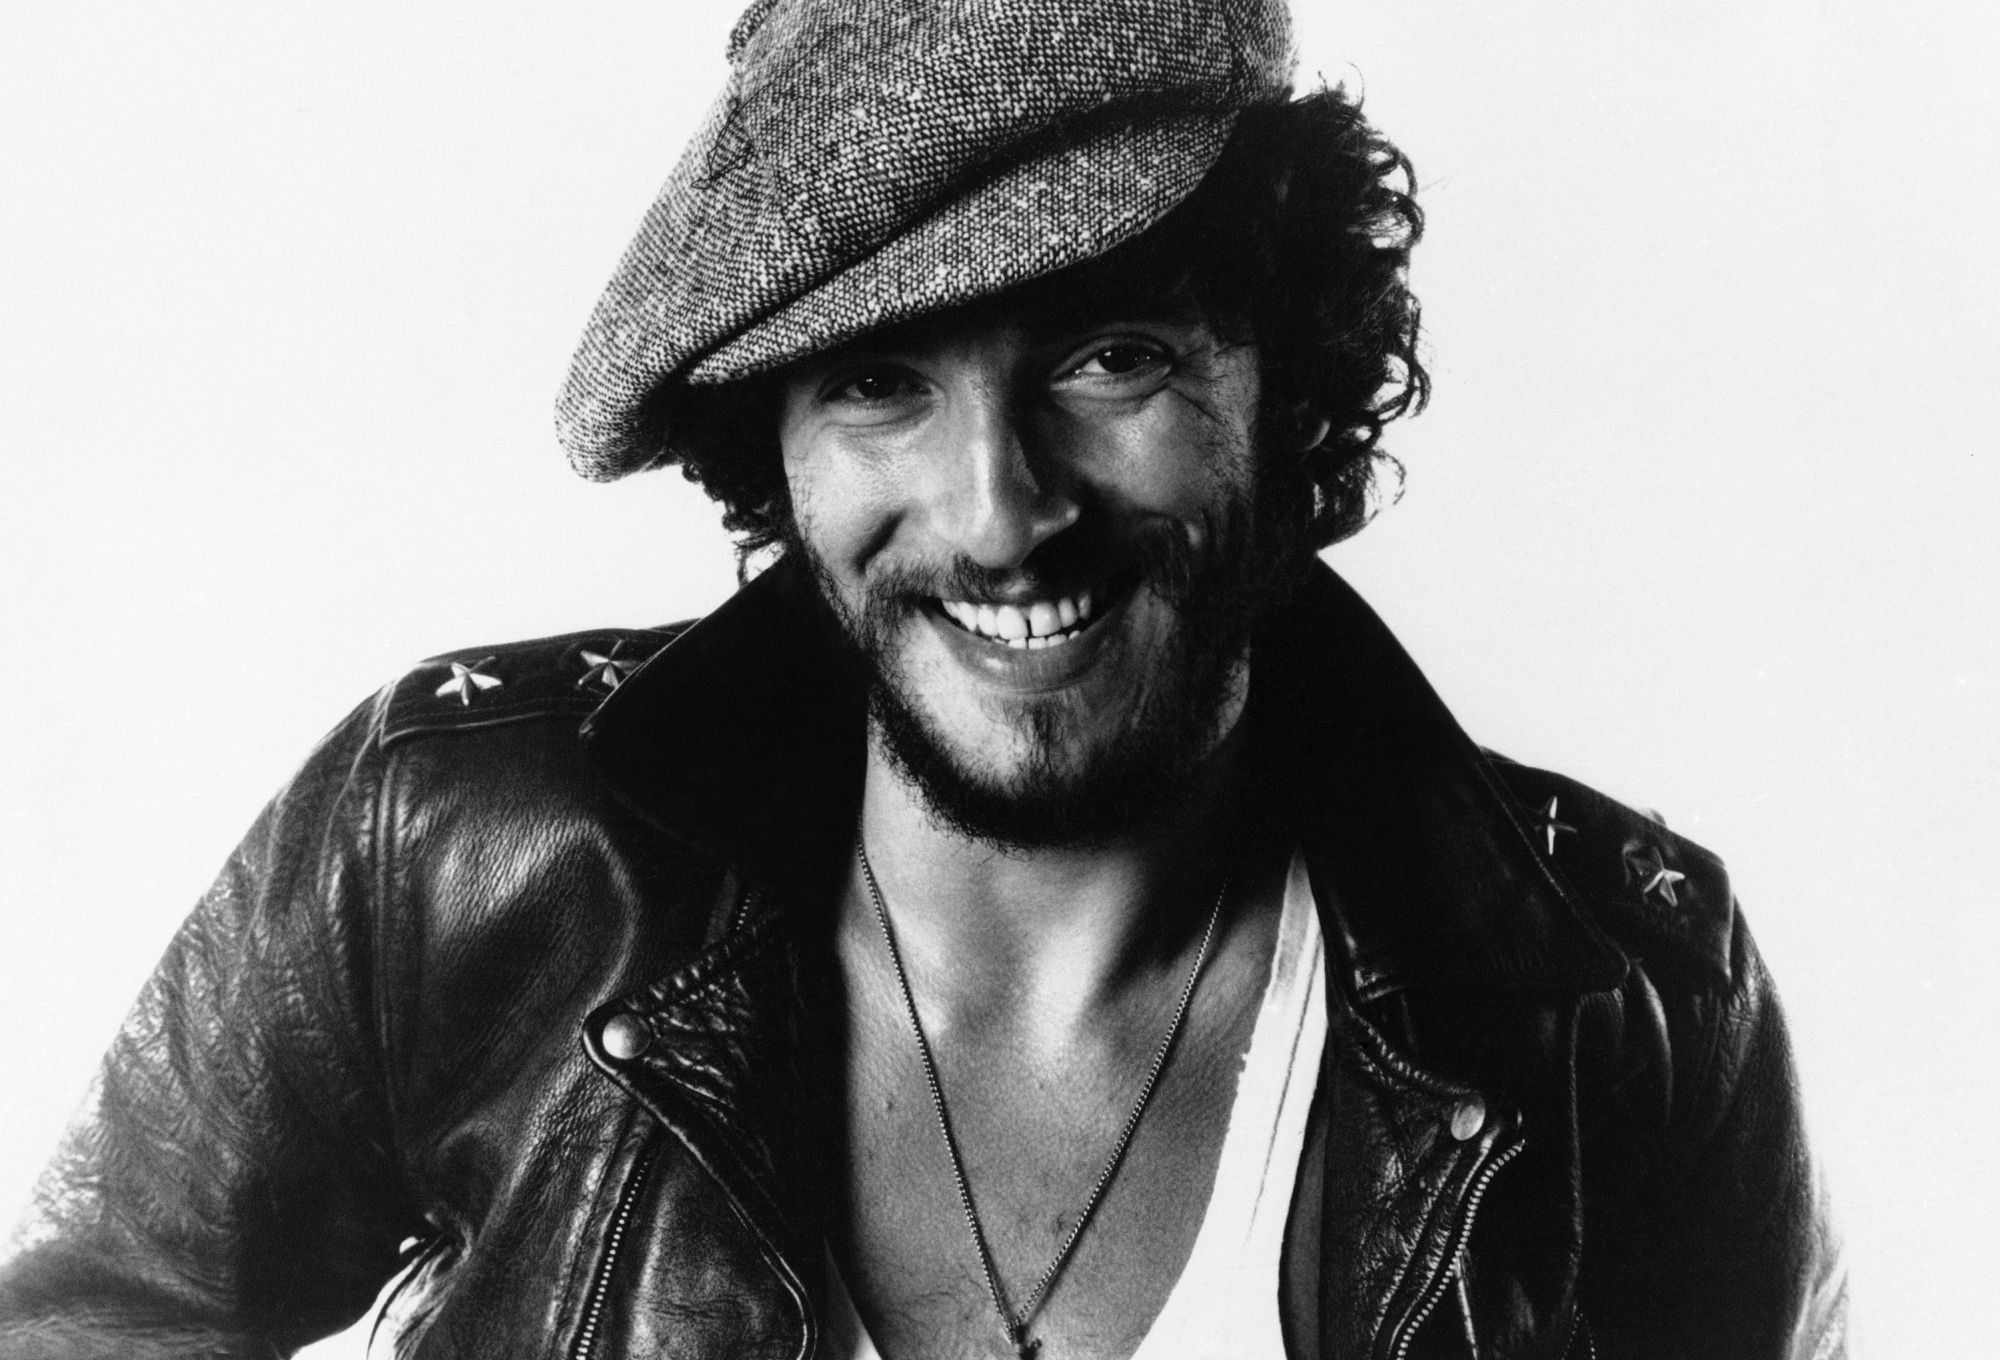 Top 10 Albums Bruce springsteen, The boss bruce, Bruce